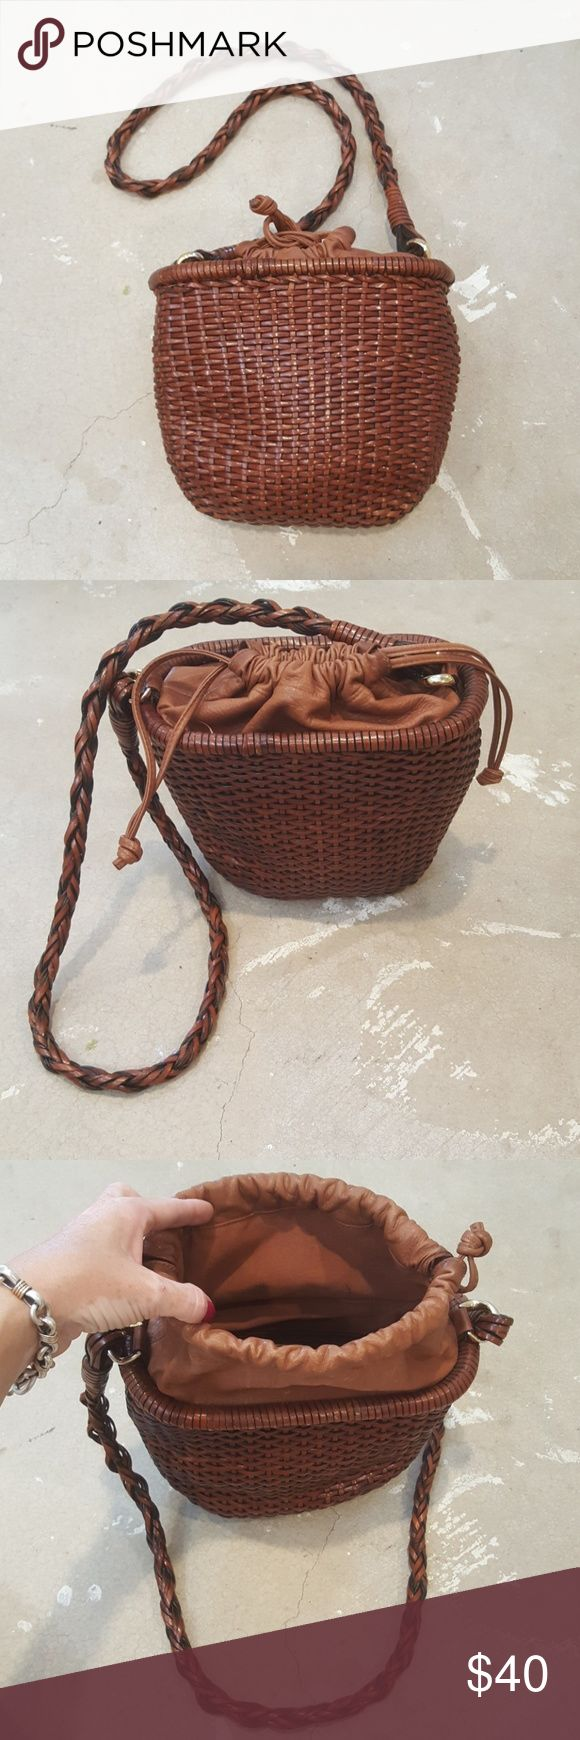 "Talbots Genuine Leather Bucket Bag I am selling a stunning and unique, Talbots bucket bag.  This is genuine ""woven"" leather in the prettiest brown hue.  I adore the shape this bucket bag hold regardless of what is placed inside, and the adjustable ""slouchy"" top adds icing to an already stellar design cake!!  Excellent condition with iminmal interior wear, outside is great. Talbots Bags Hobos"